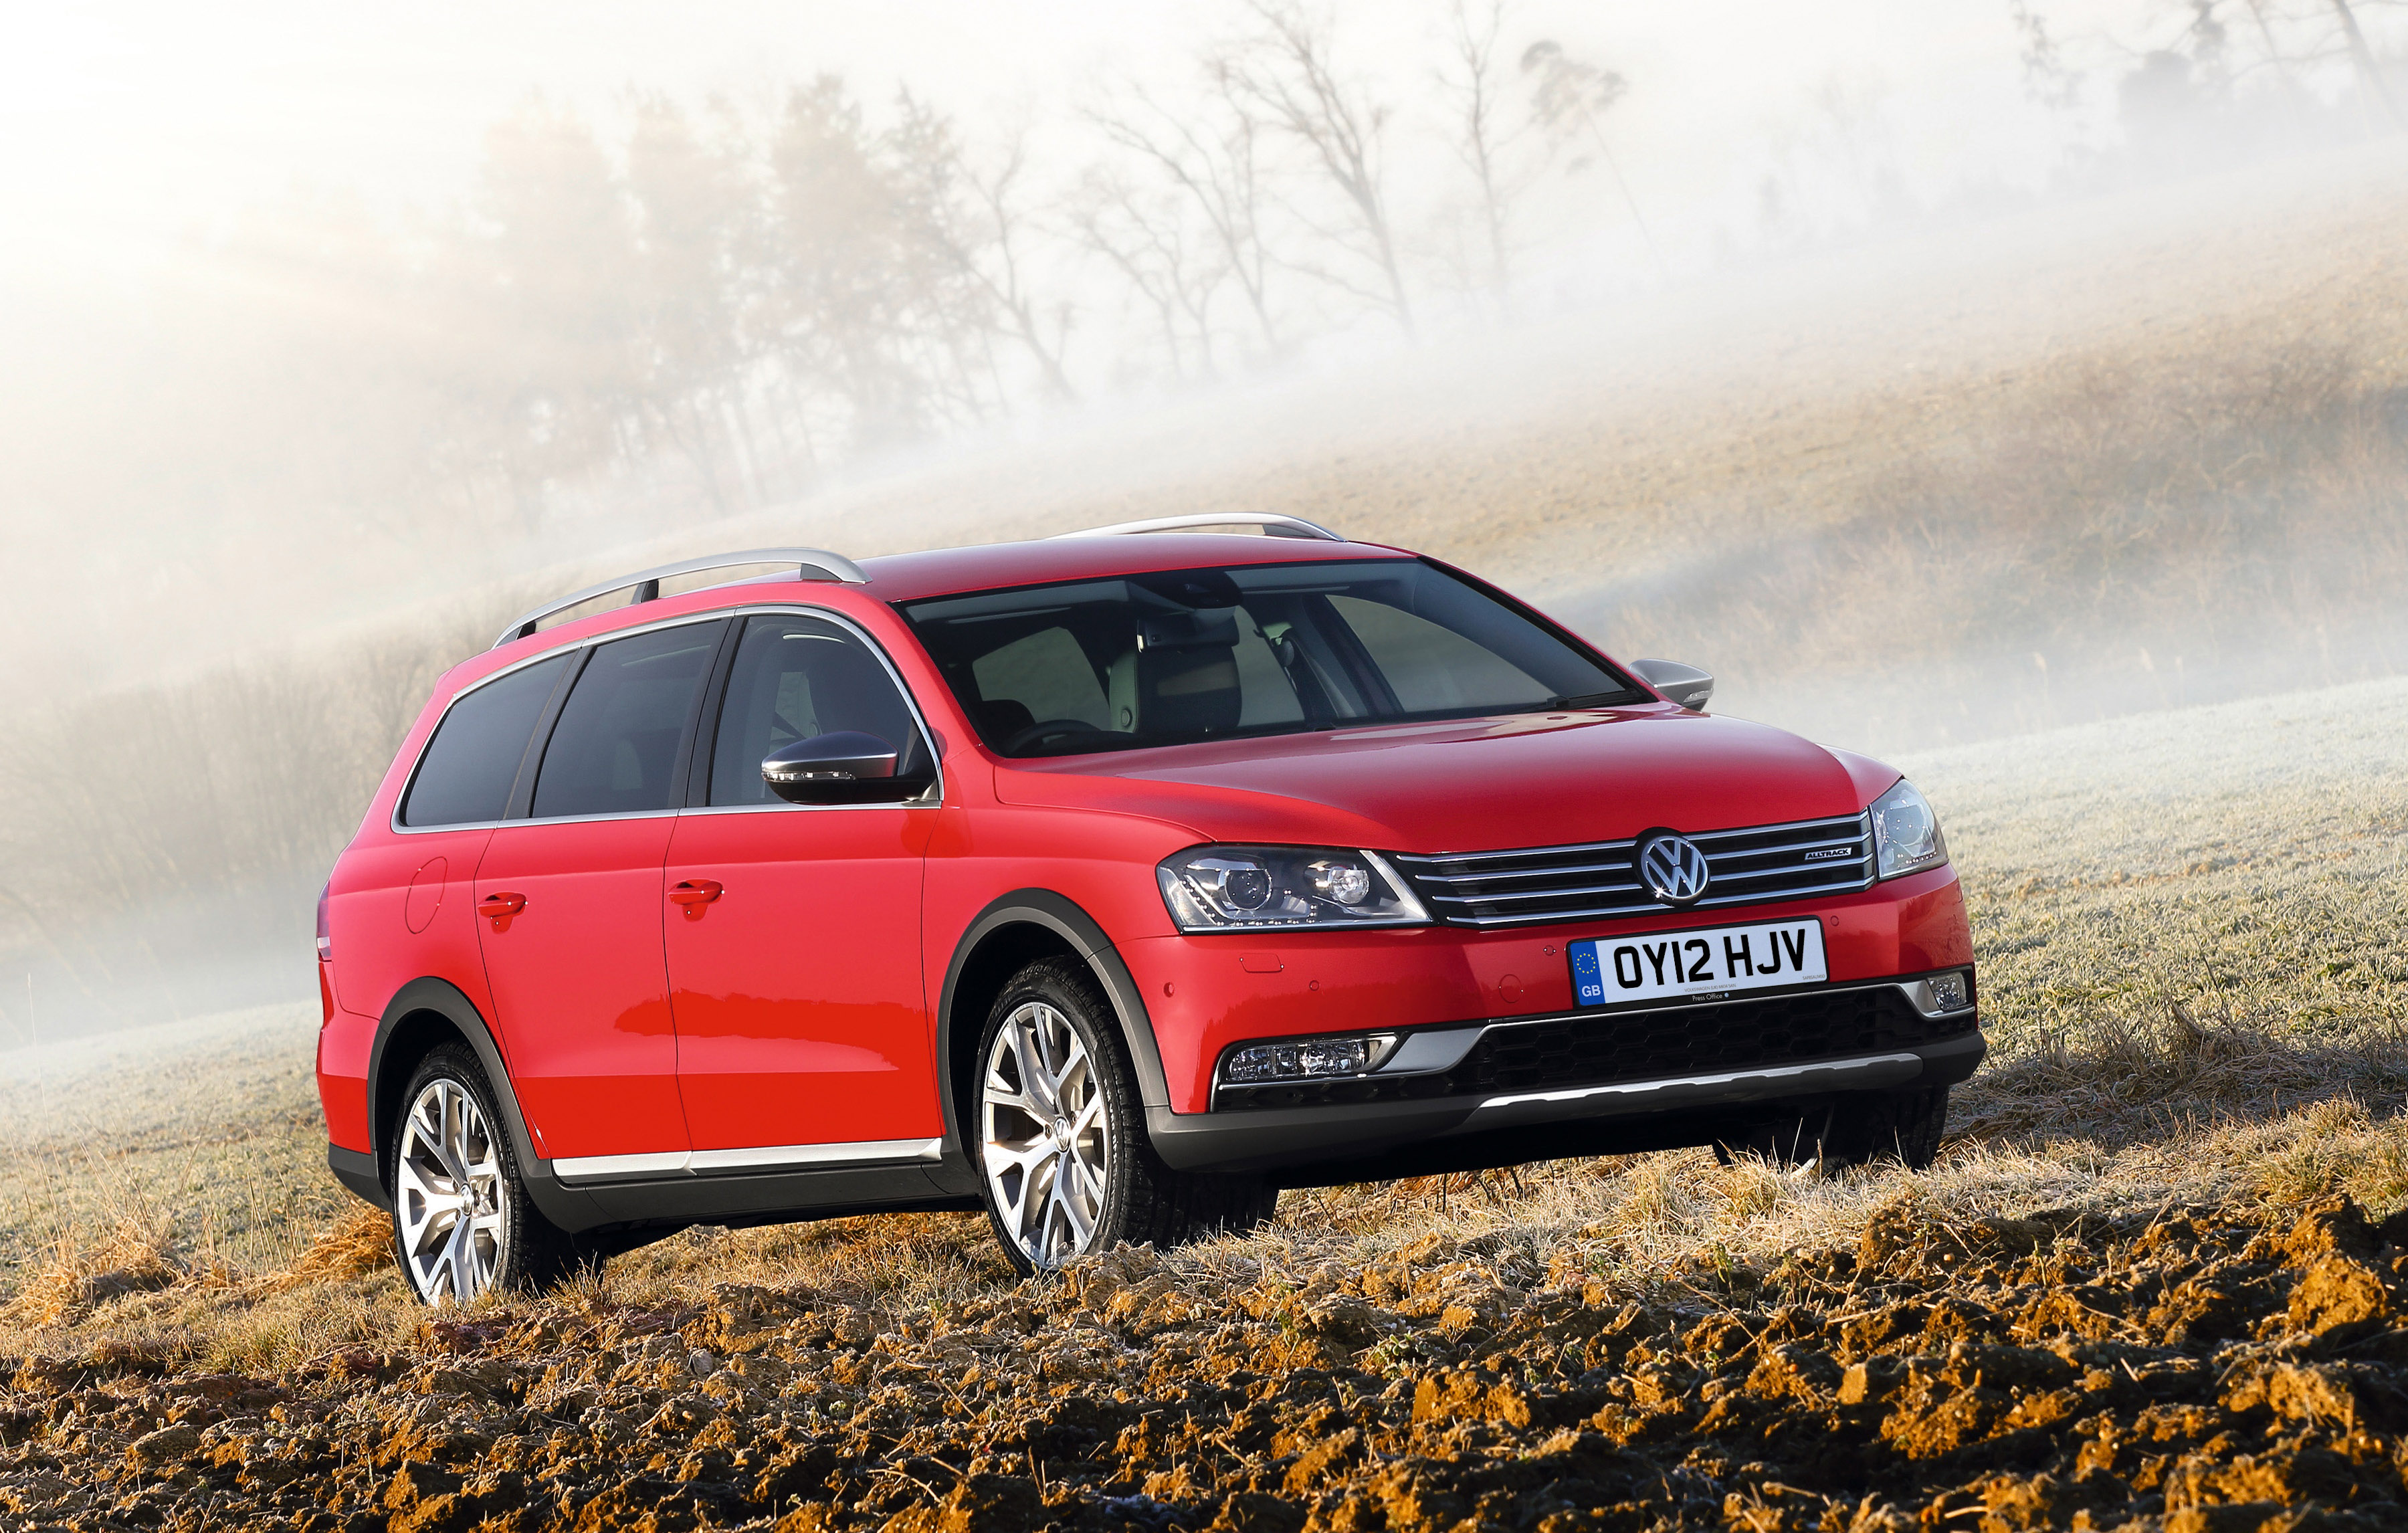 2012 volkswagen passat alltrack uk price 28 475. Black Bedroom Furniture Sets. Home Design Ideas